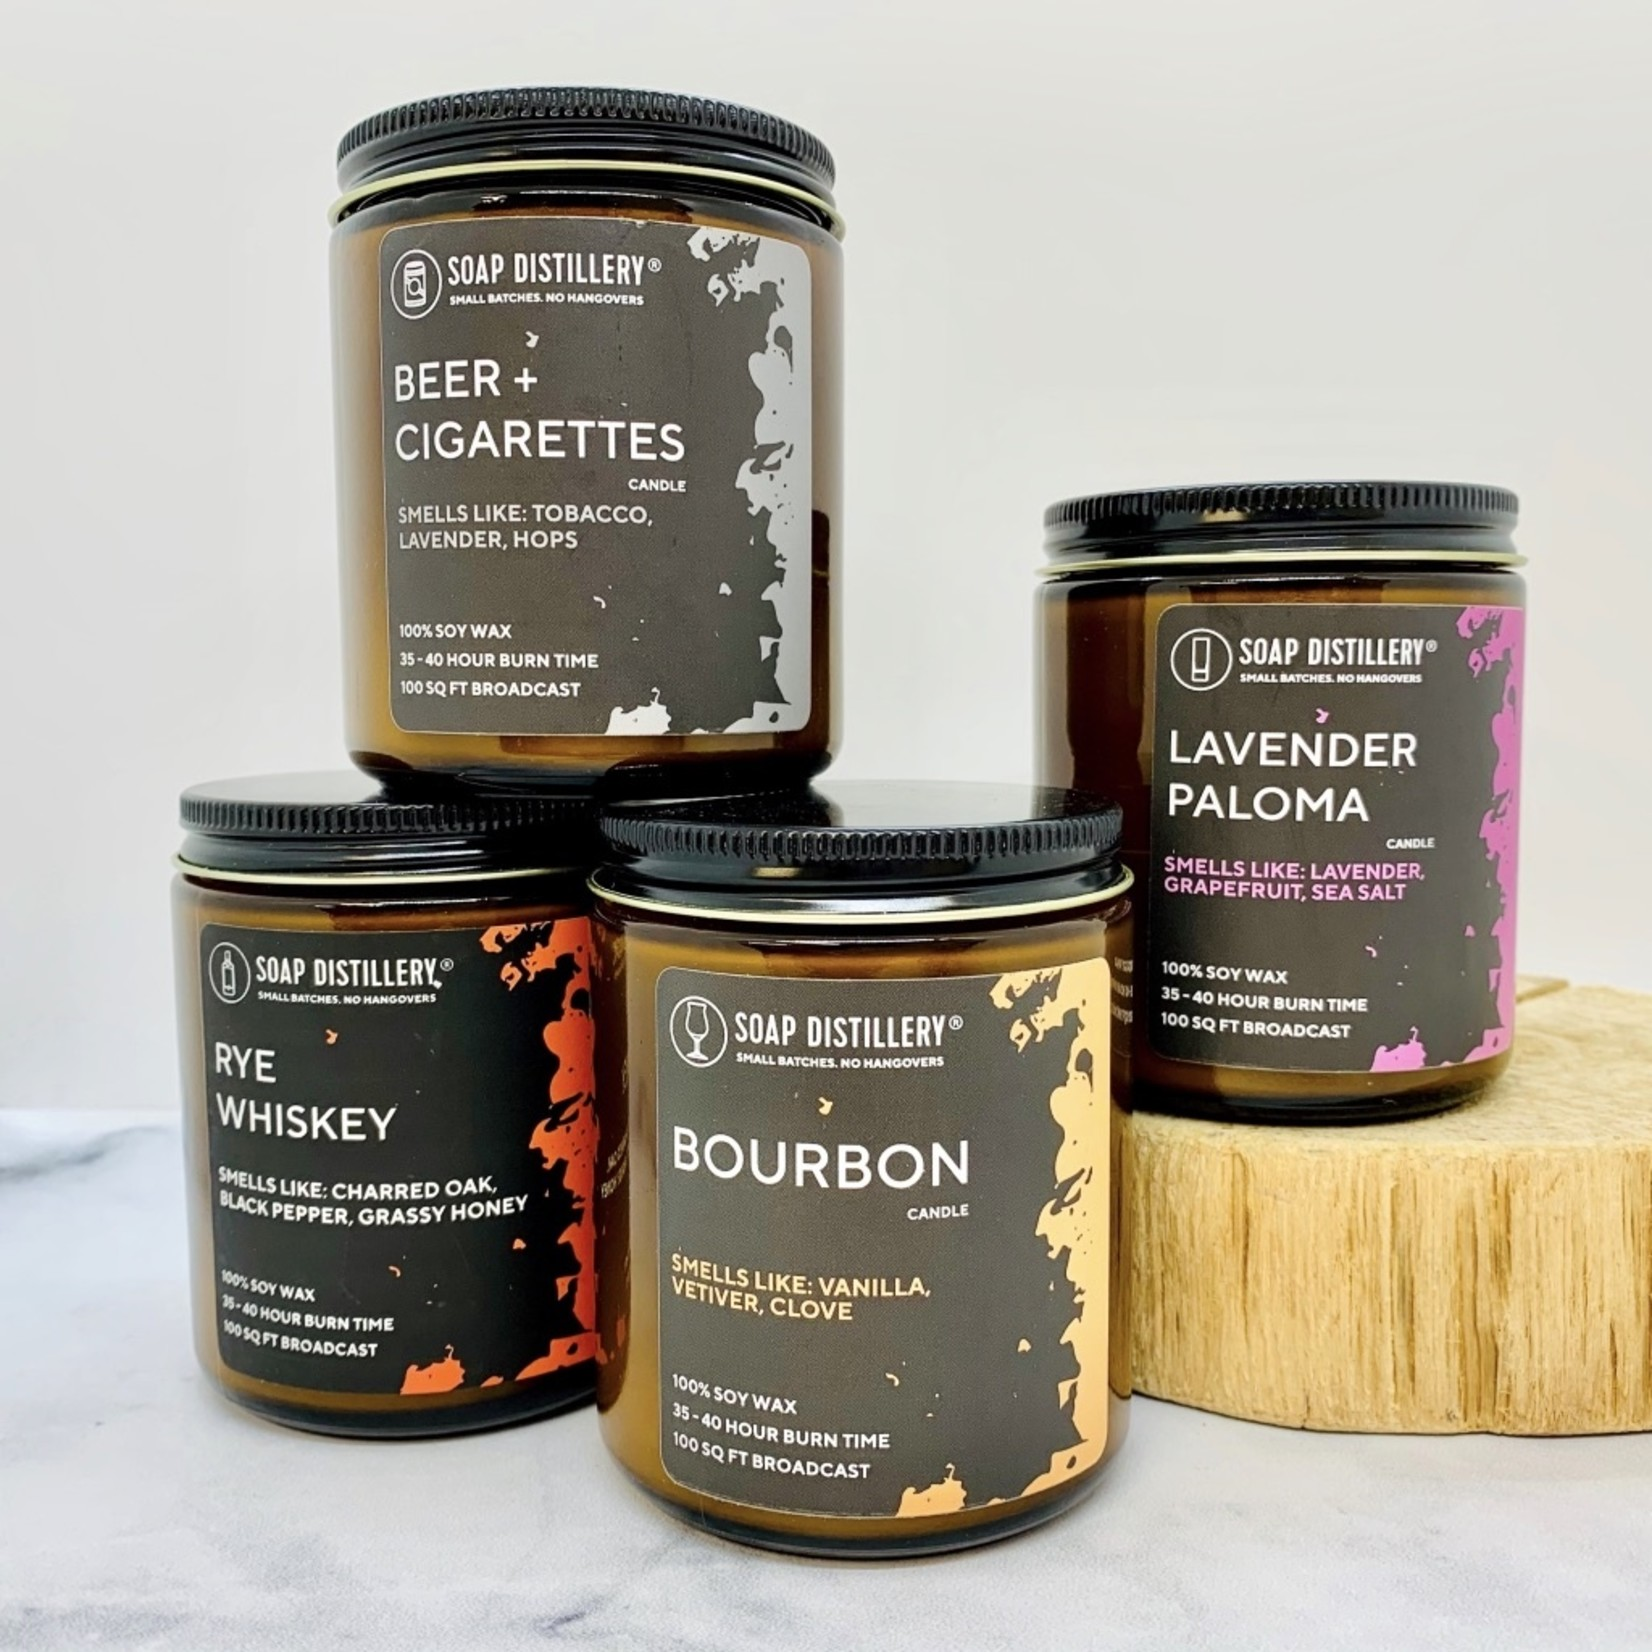 Soap Distillery Candles